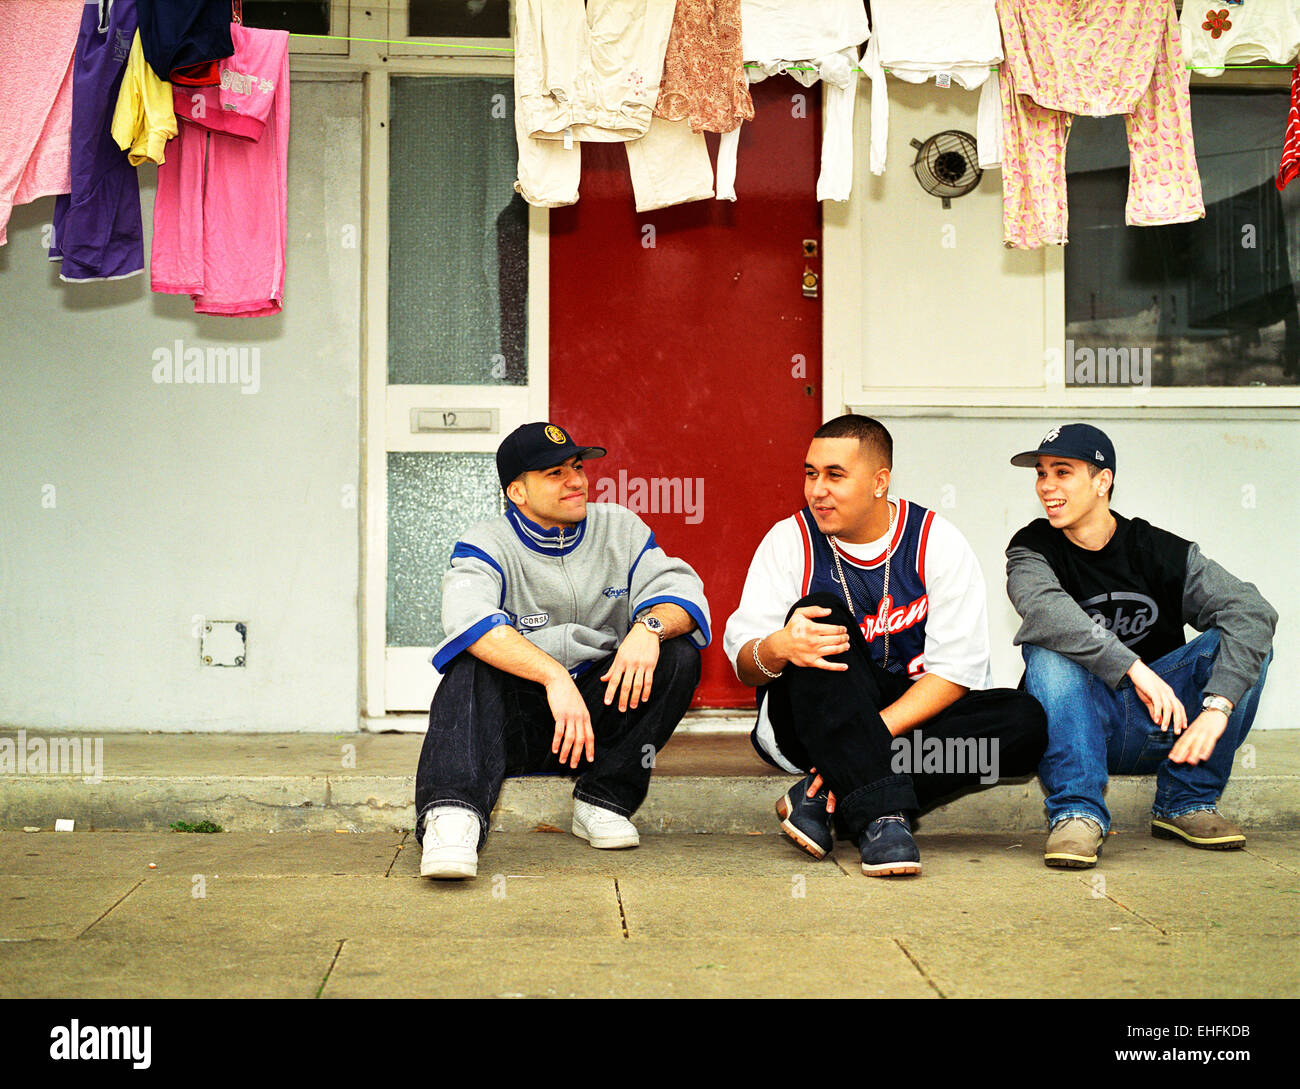 Latin Clan photographed on the estate where they live in Edgware London. - Stock Image